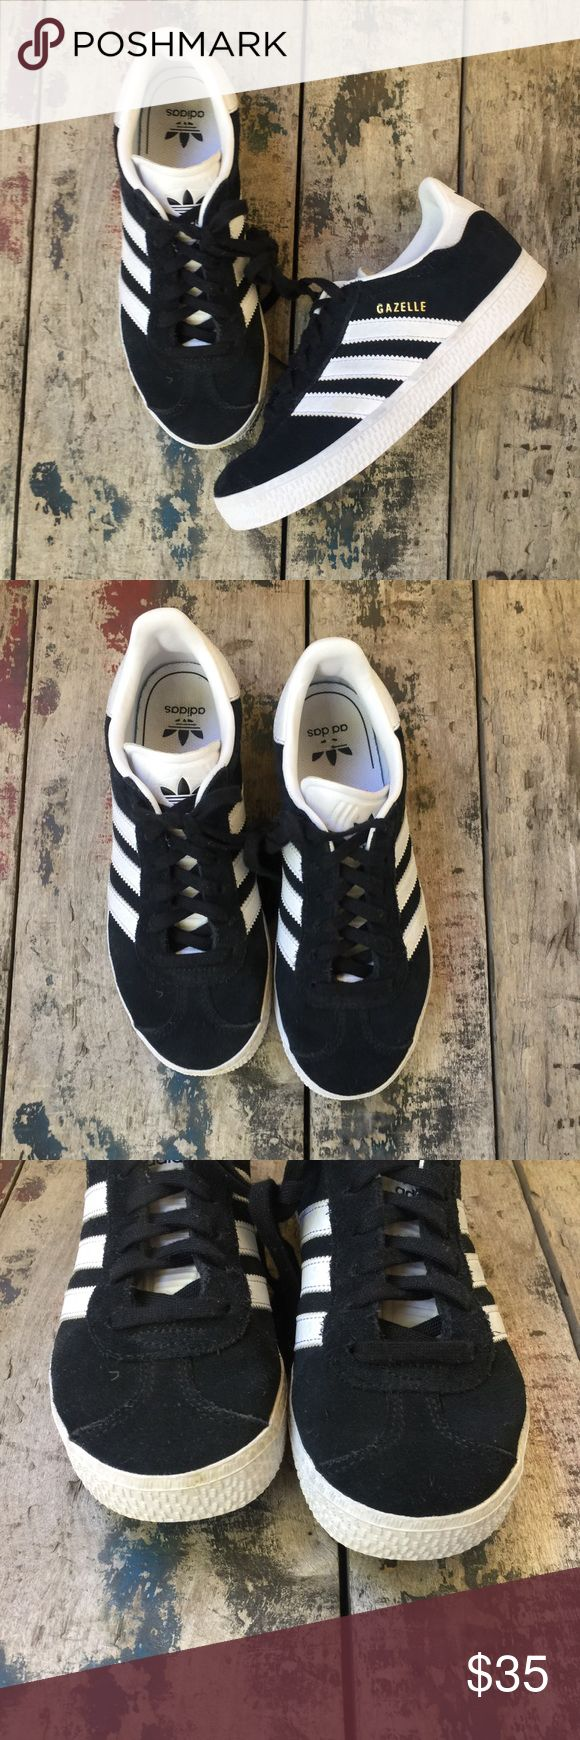 Adidas GAZELLE black shoes sz 2 youth Lightly used clean adidas Shoes Sneakers